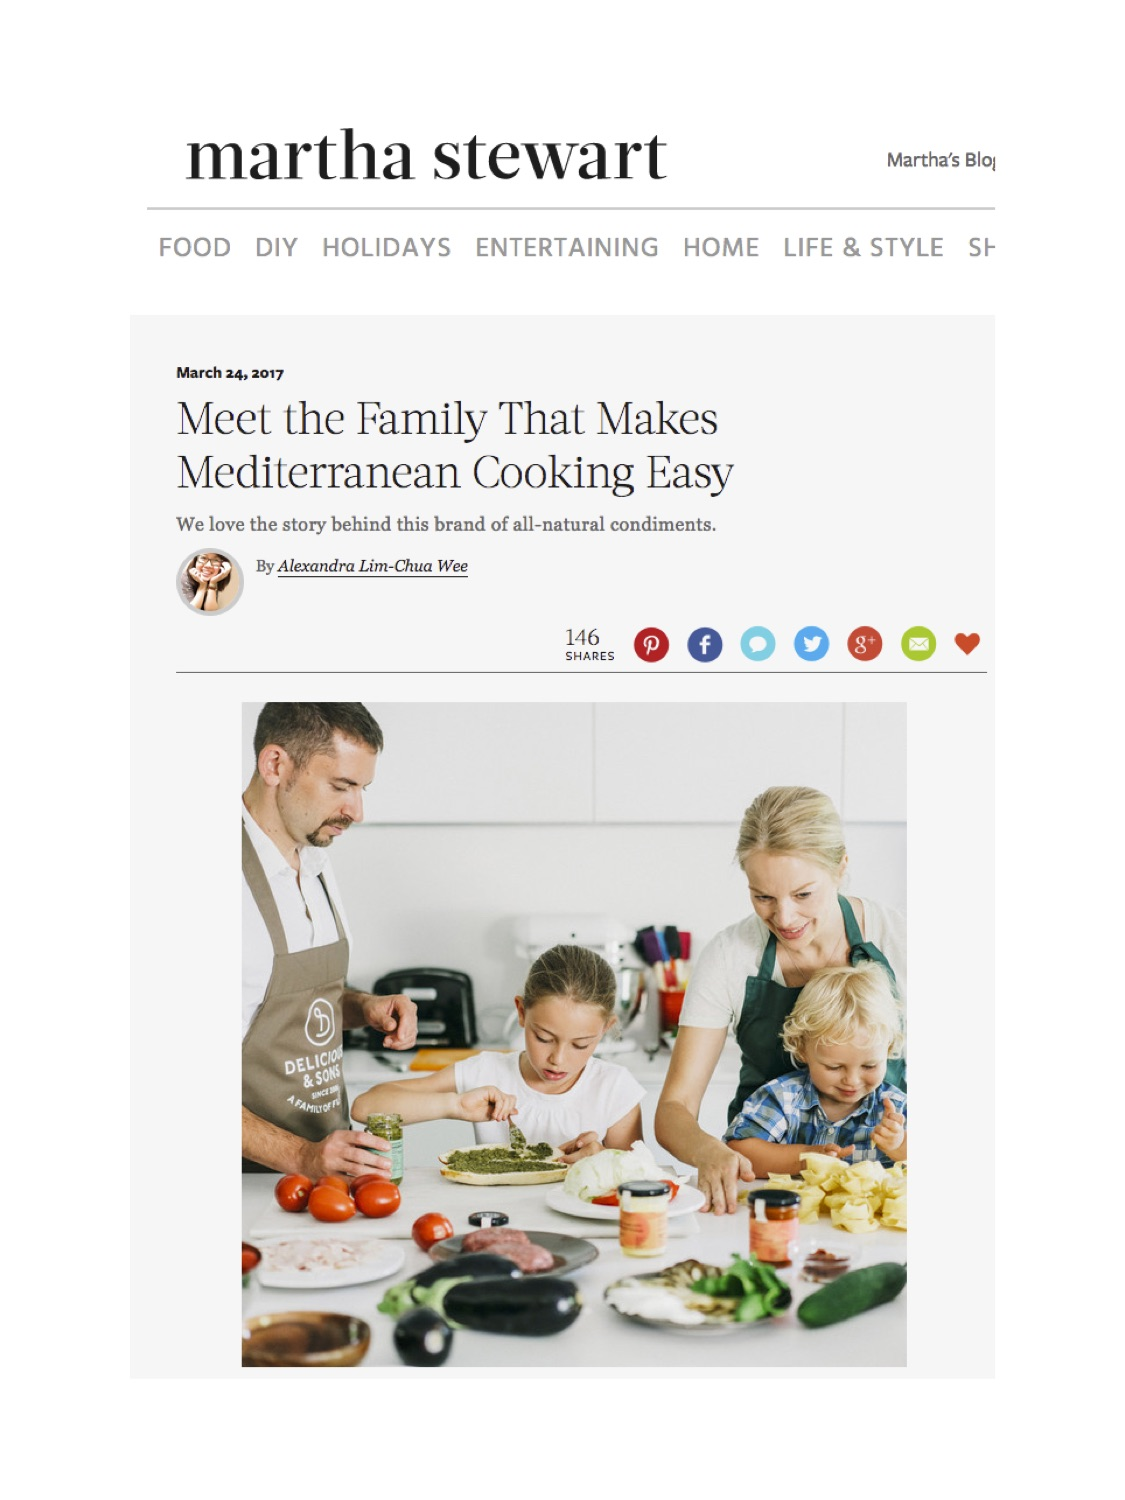 Martha Stewart meet the family that makes Mediterranean cooking easy by Delicious & Sons